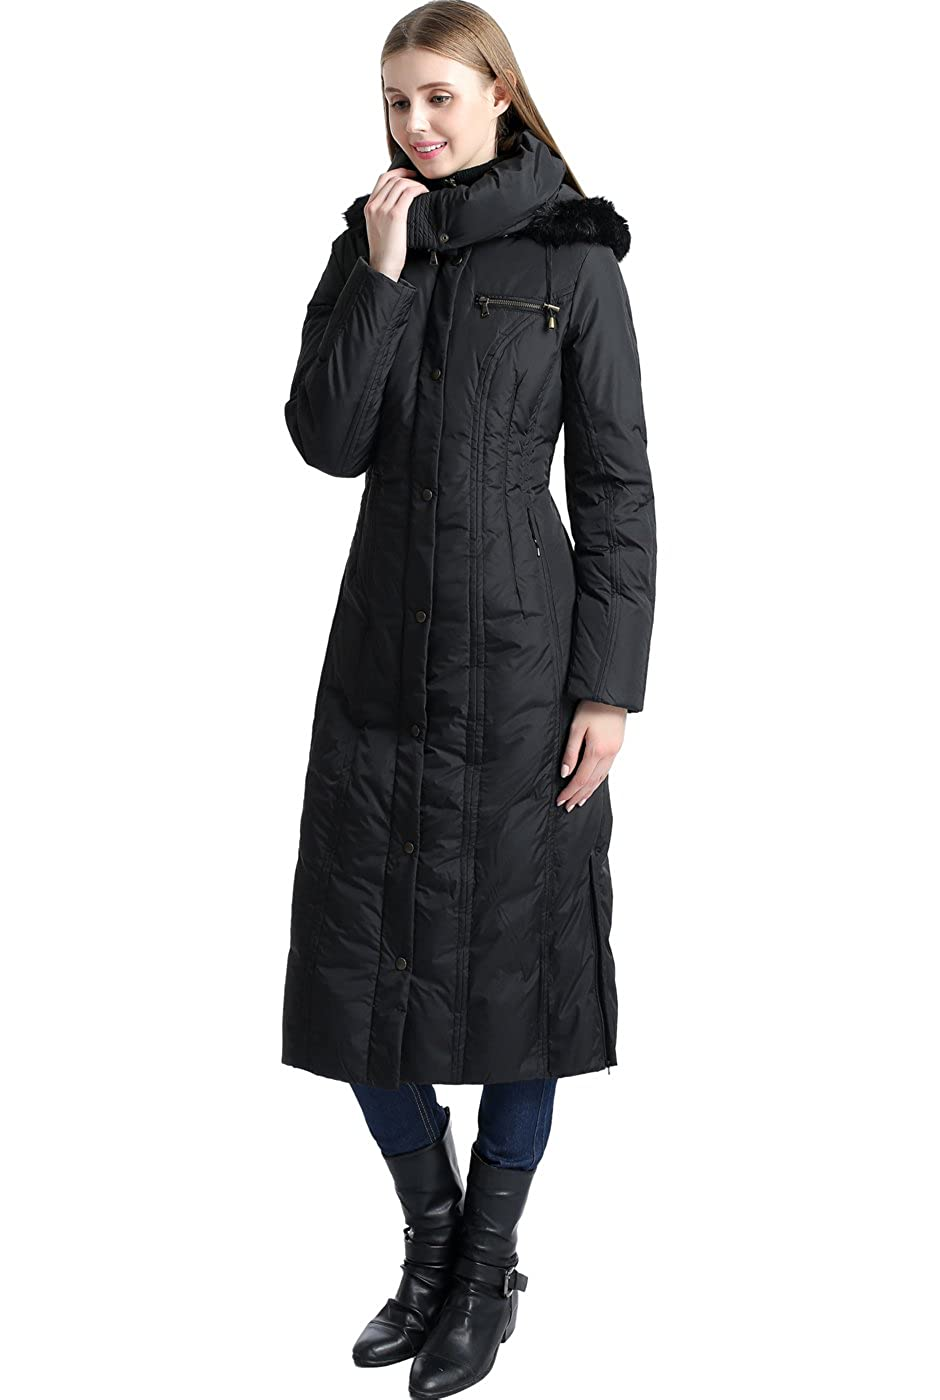 2368f69bd4d BGSD Women's Lacey Water Resistant Maxi Down Coat: Amazon.ca: Clothing &  Accessories